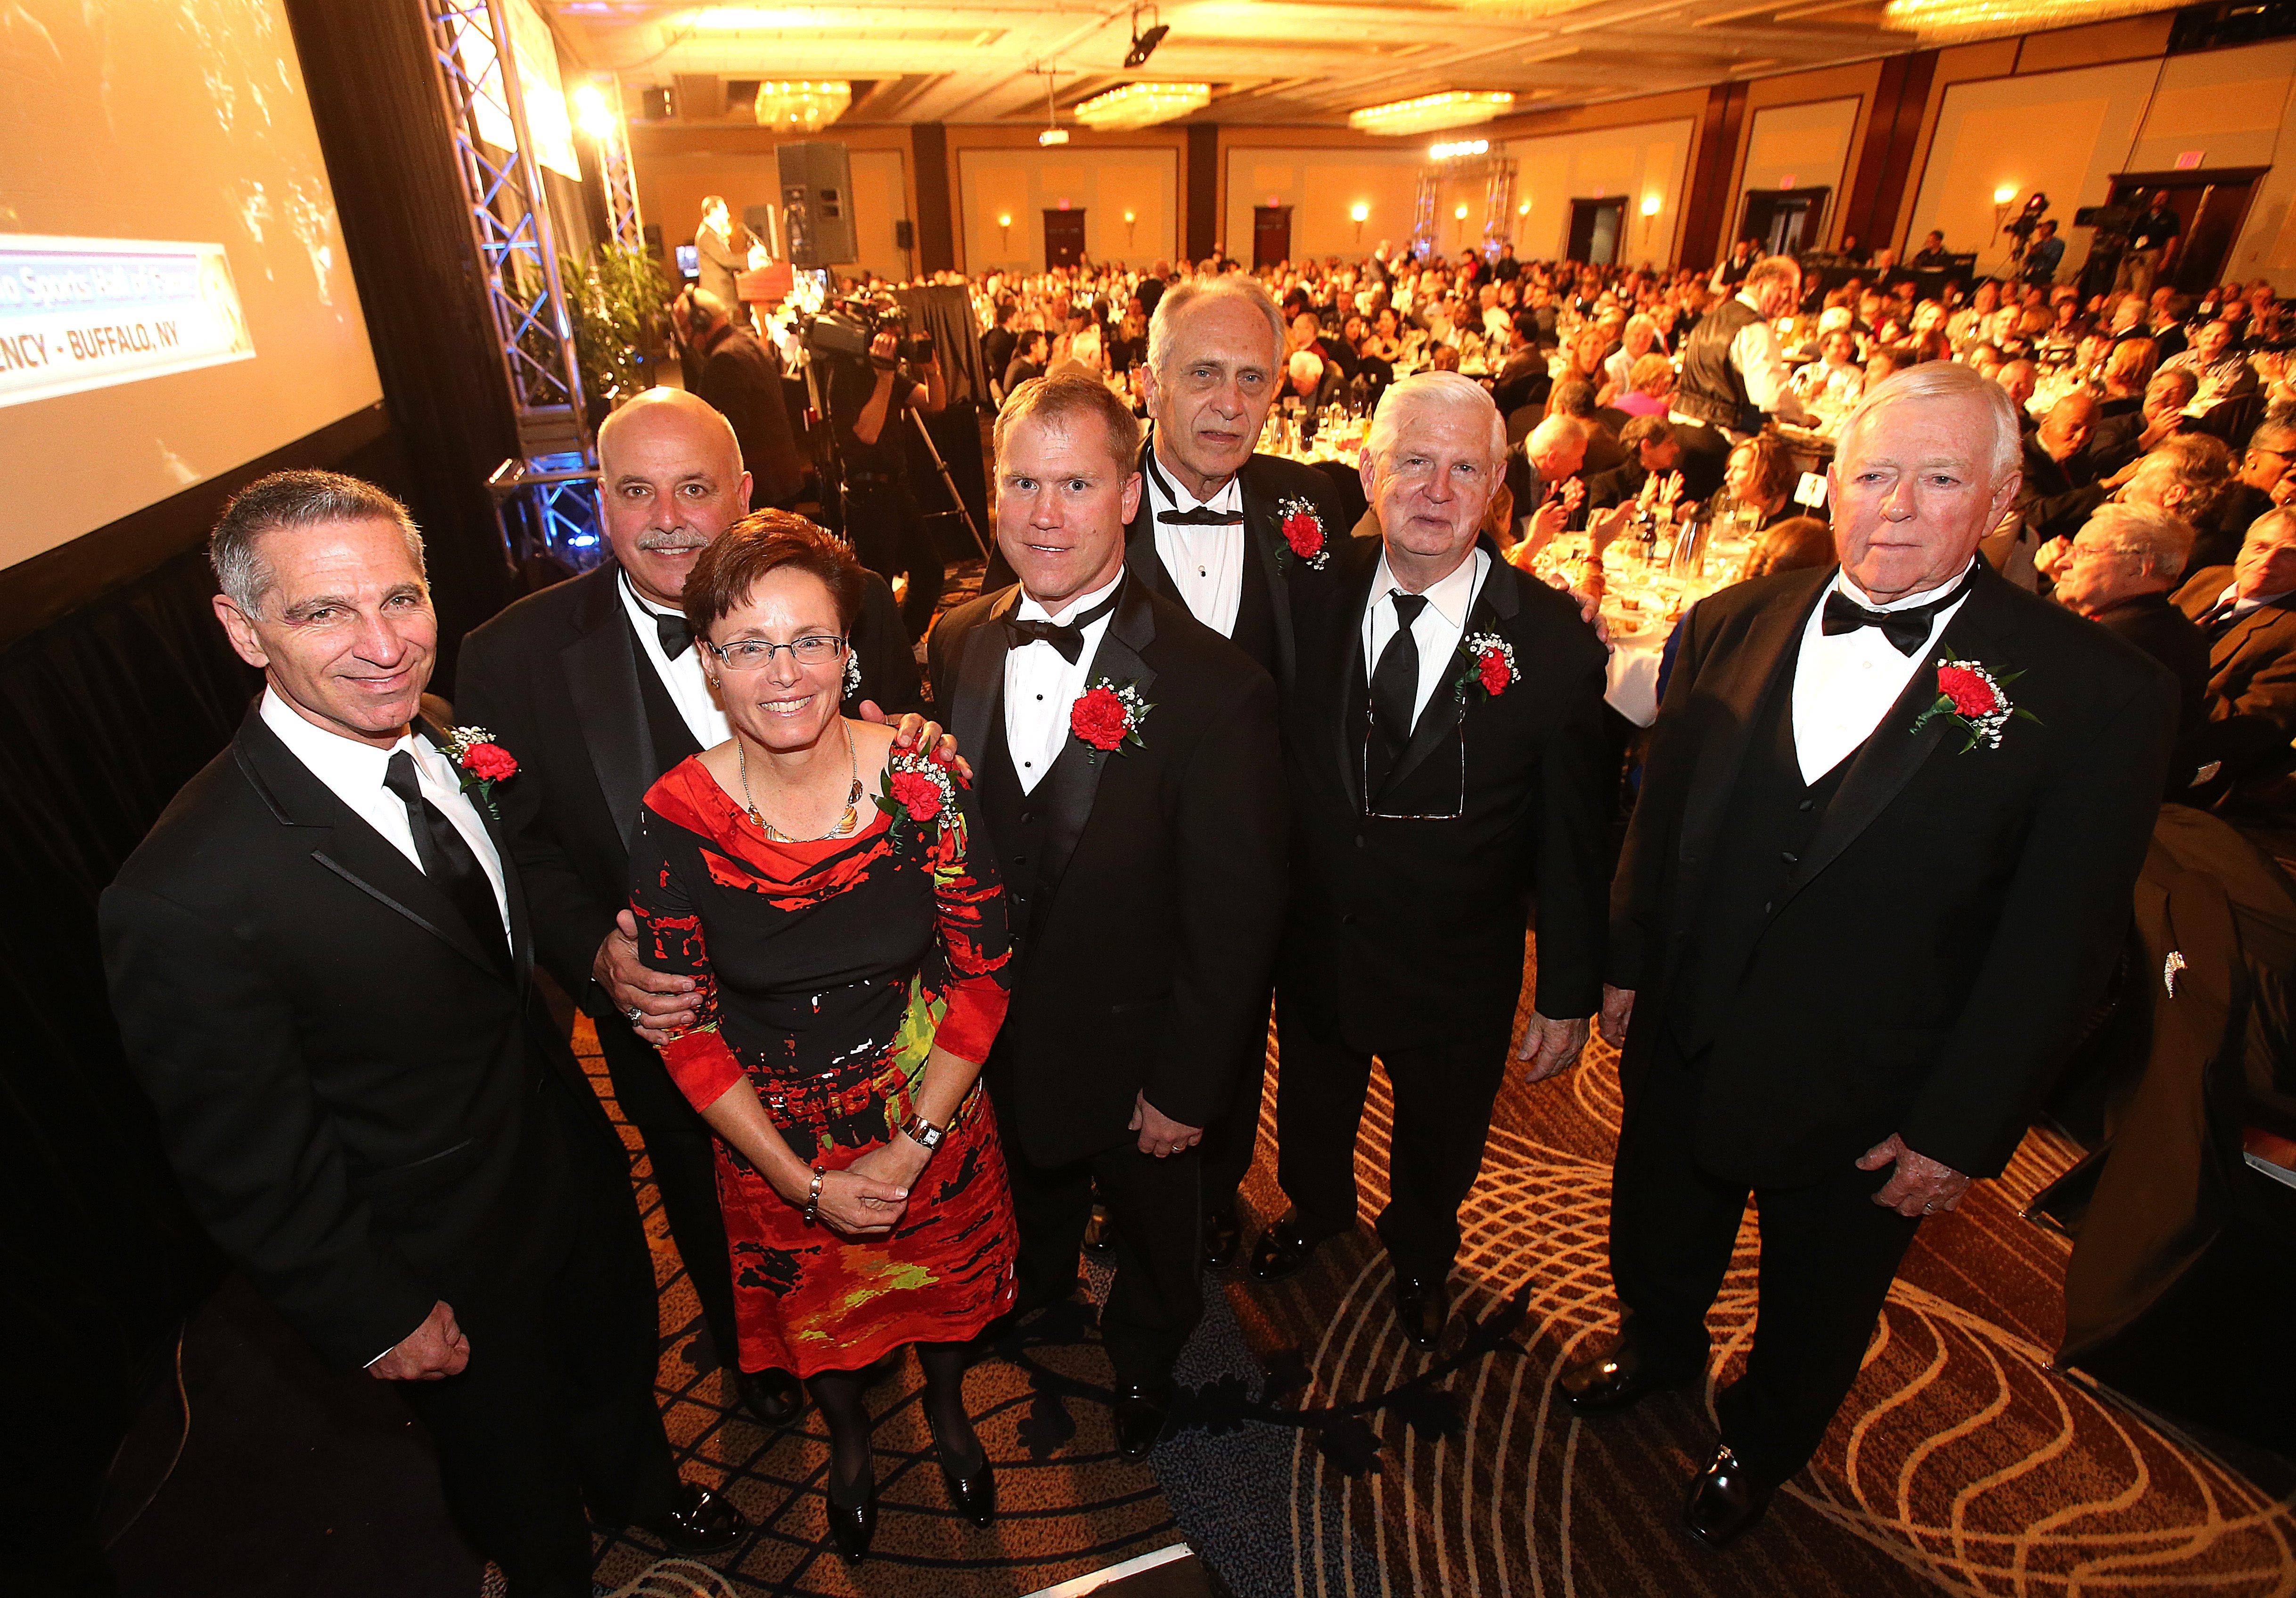 From left, Phil McConkey, Dick Diminuco, Pam Amabile, Todd Marchant, Milt Northrop, Art Jeziorski and Fred Hartrick at the Greater Buffalo Sports Hall of Fame induction dinner at the Hyatt Regency.